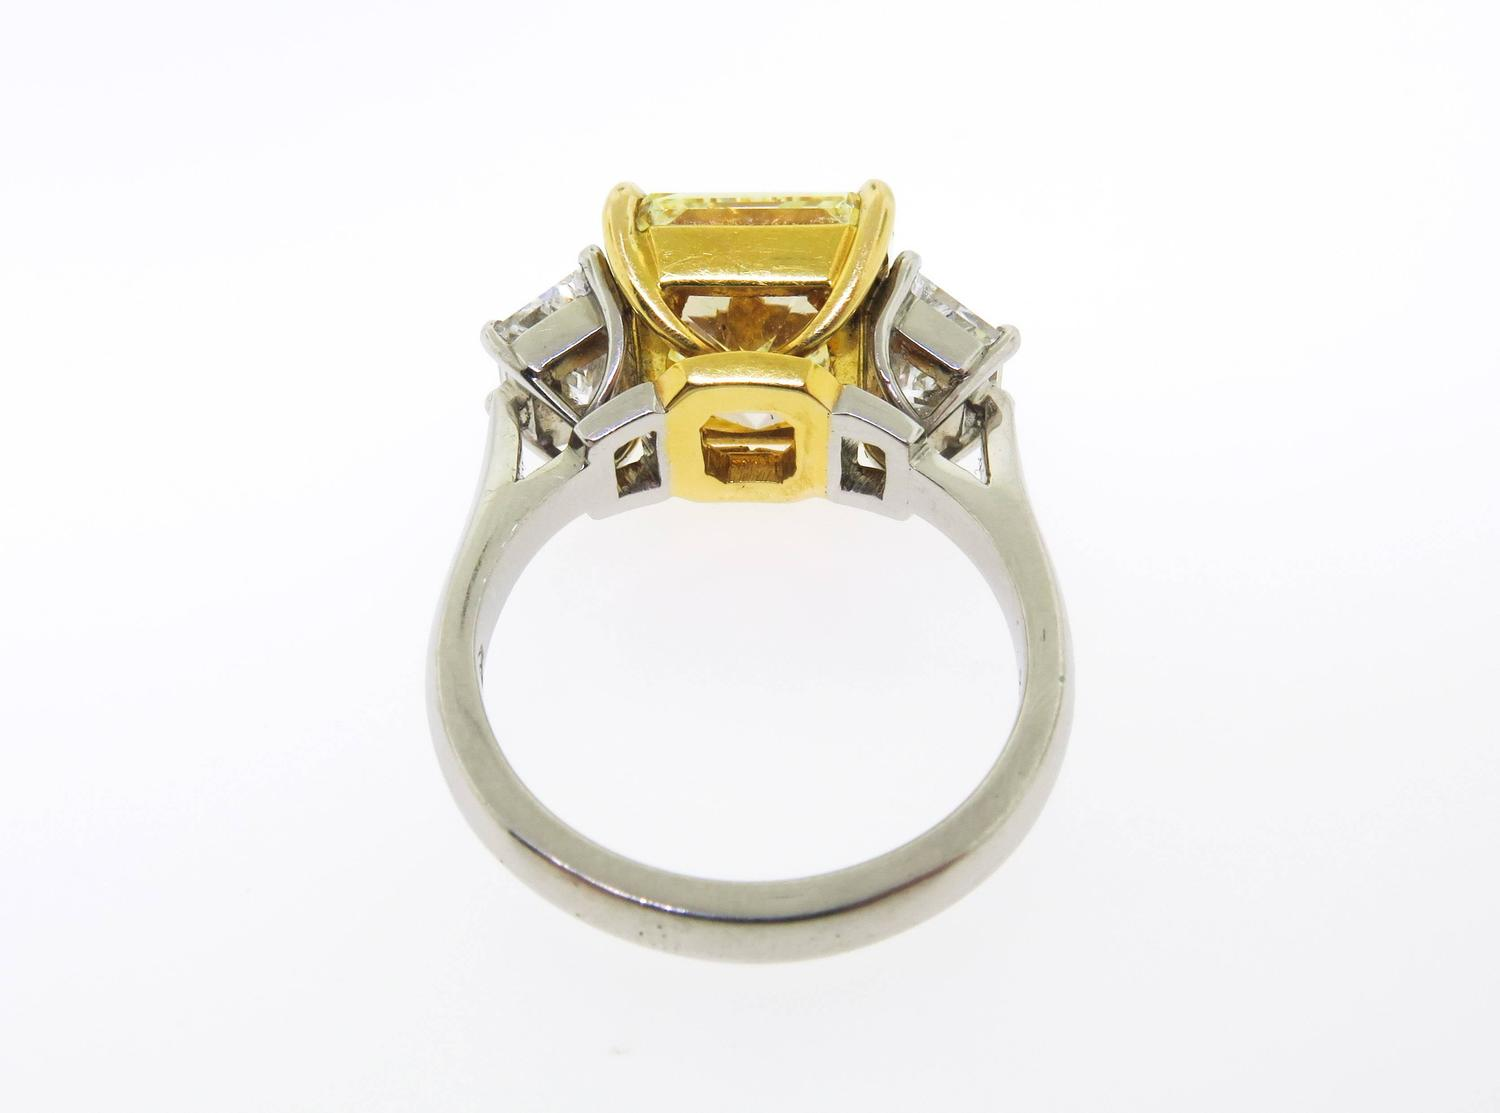 Fancy Yellow Diamond Platinum Engagement Ring For Sale at 1stdibs